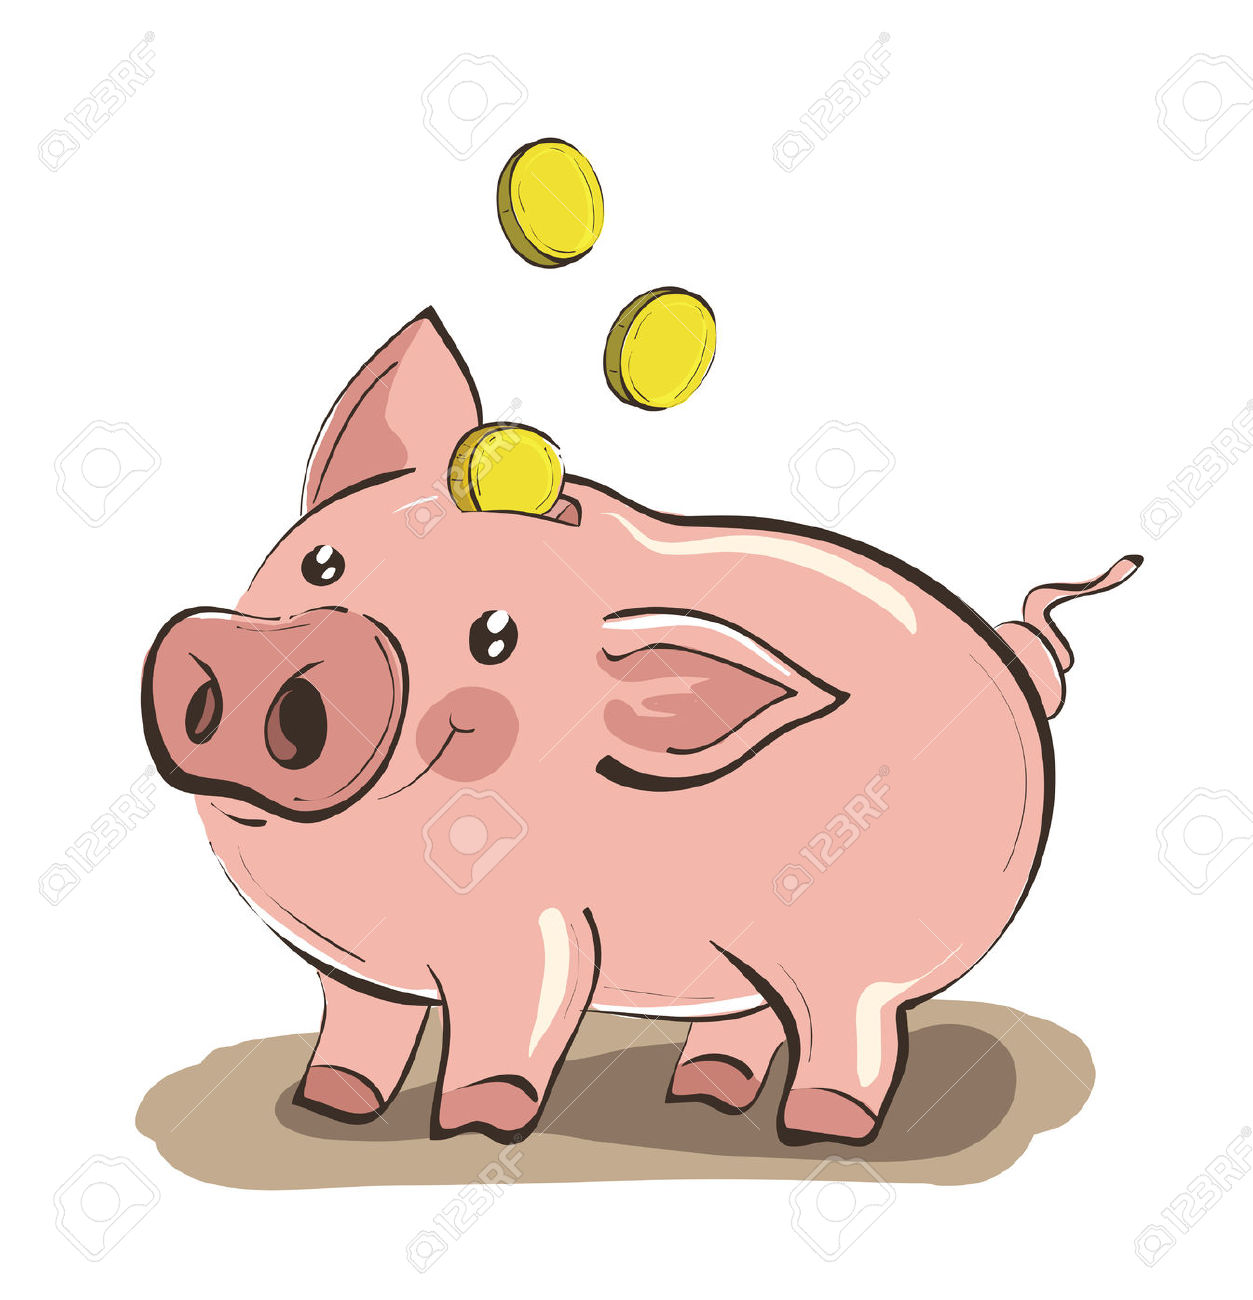 Cute piggy bank clipart vector transparent download Illustration Of Hand Drawn Piggy Bank With Three Golden Coins ... vector transparent download